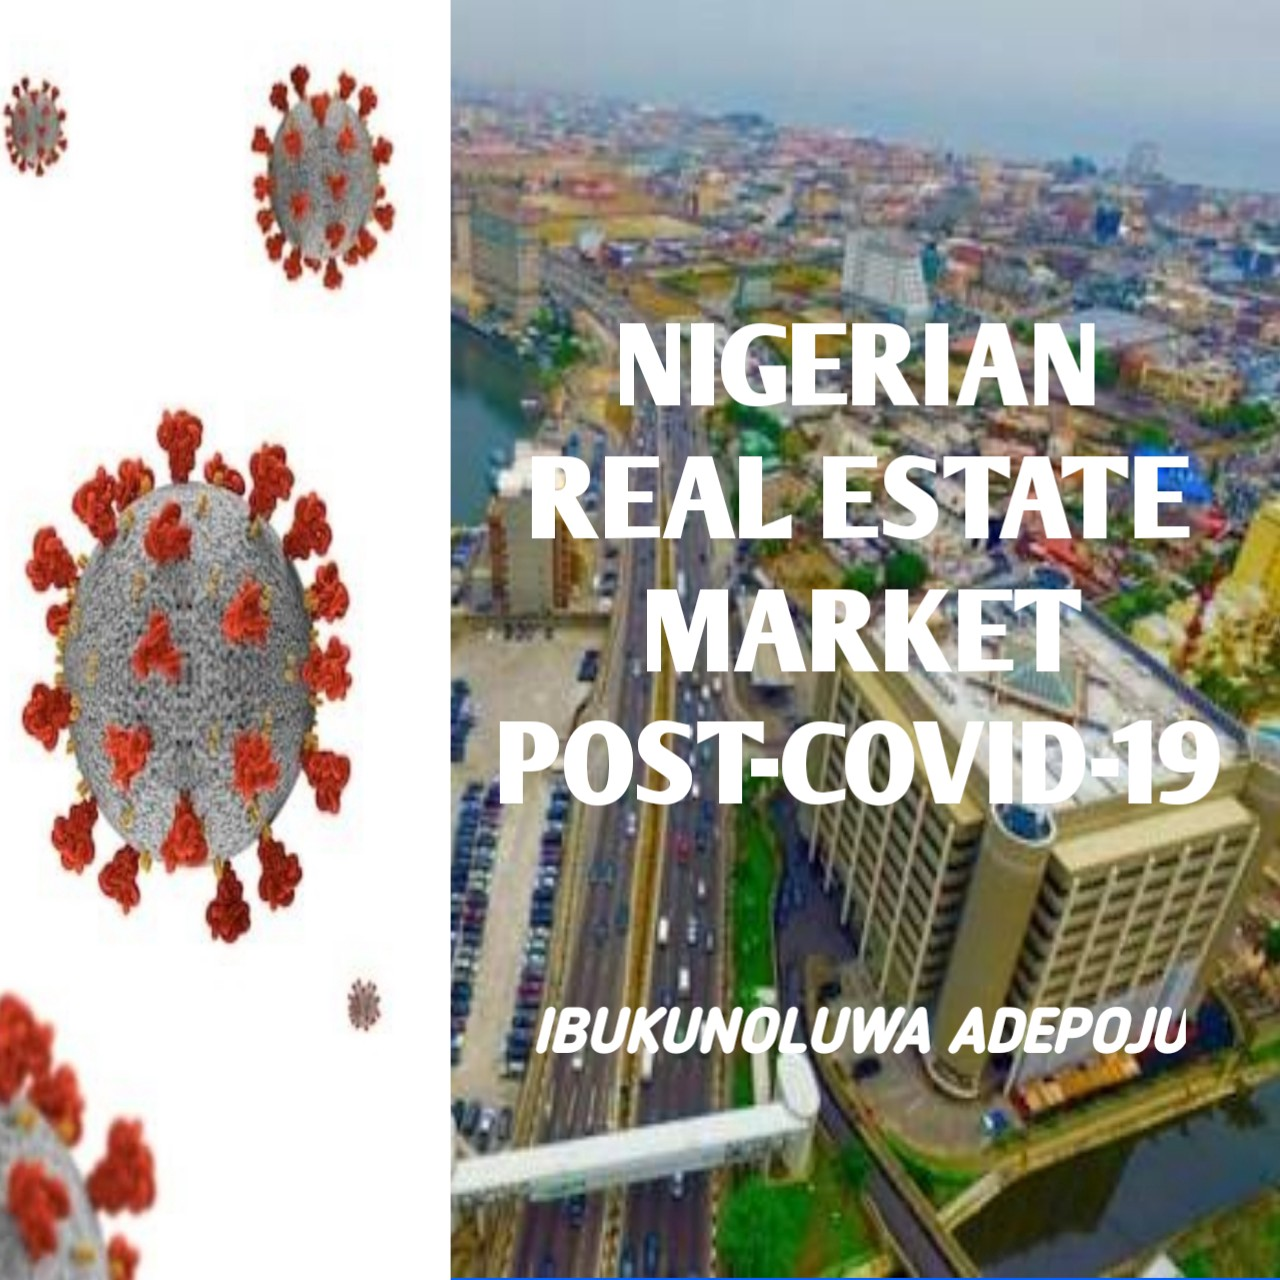 Nigerian Real Estate Market Post Covid 19 By Ibukunoluwa Adepoju Medium